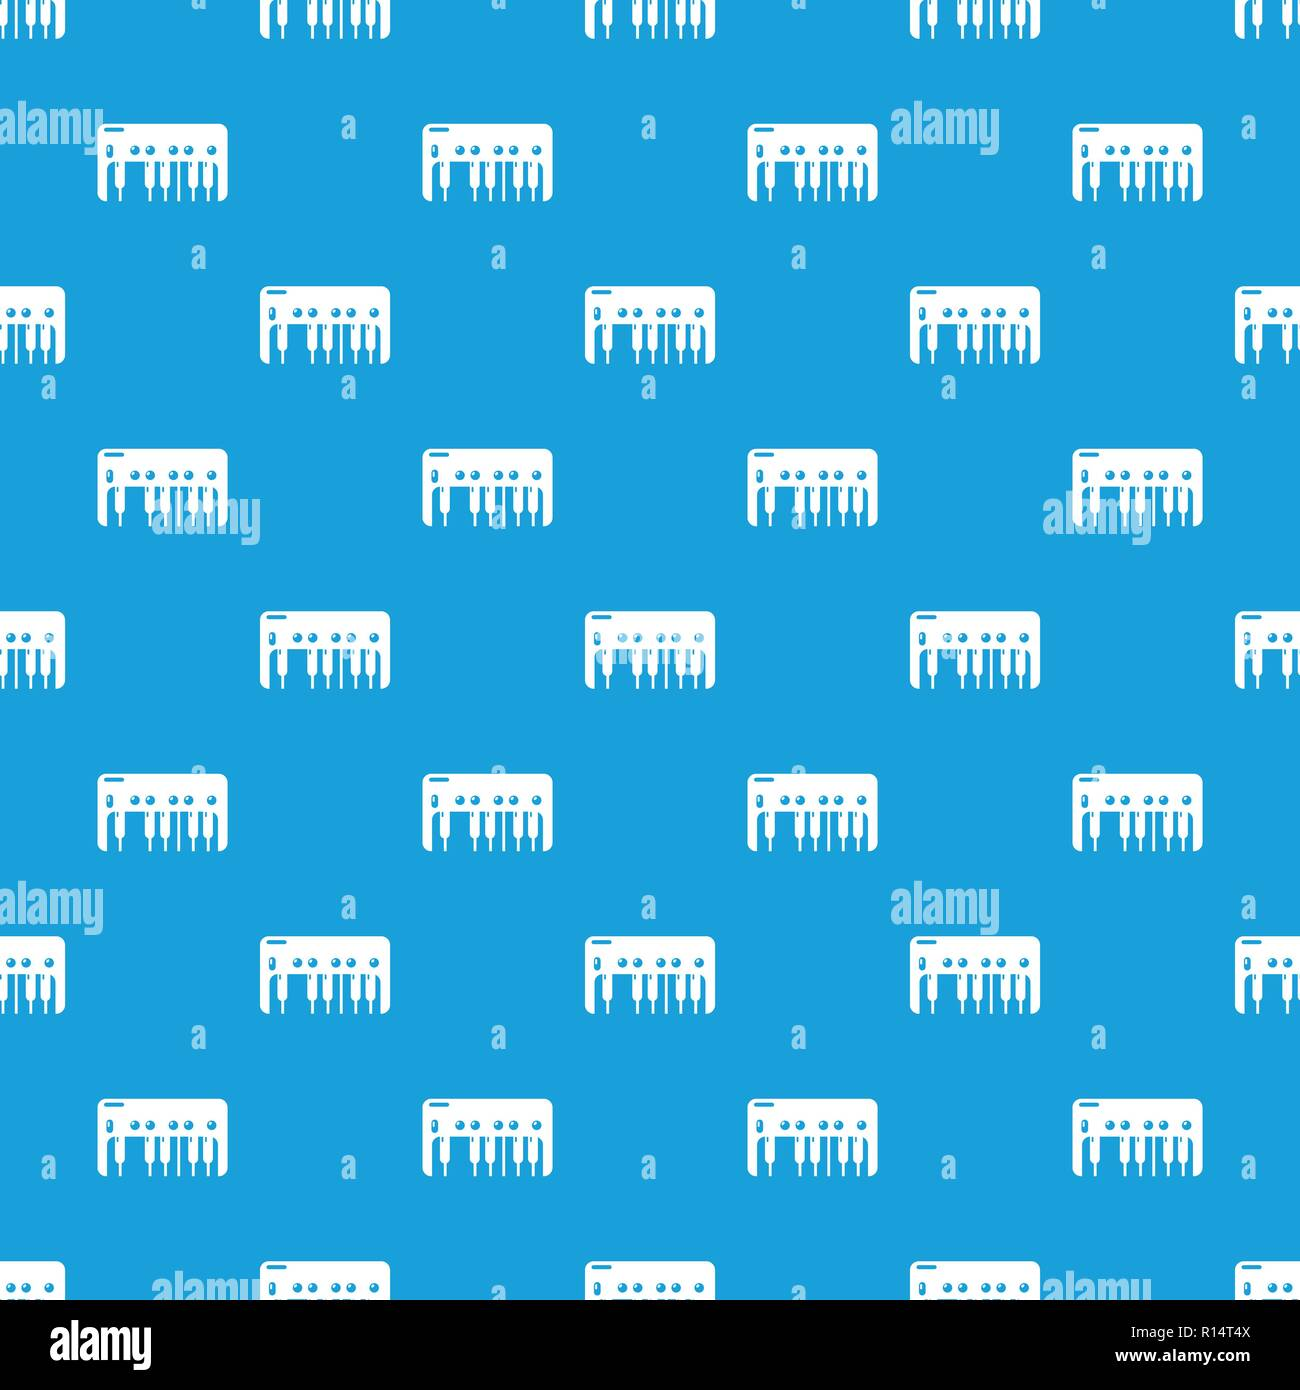 Synthesizer piano pattern vector seamless blue - Stock Image